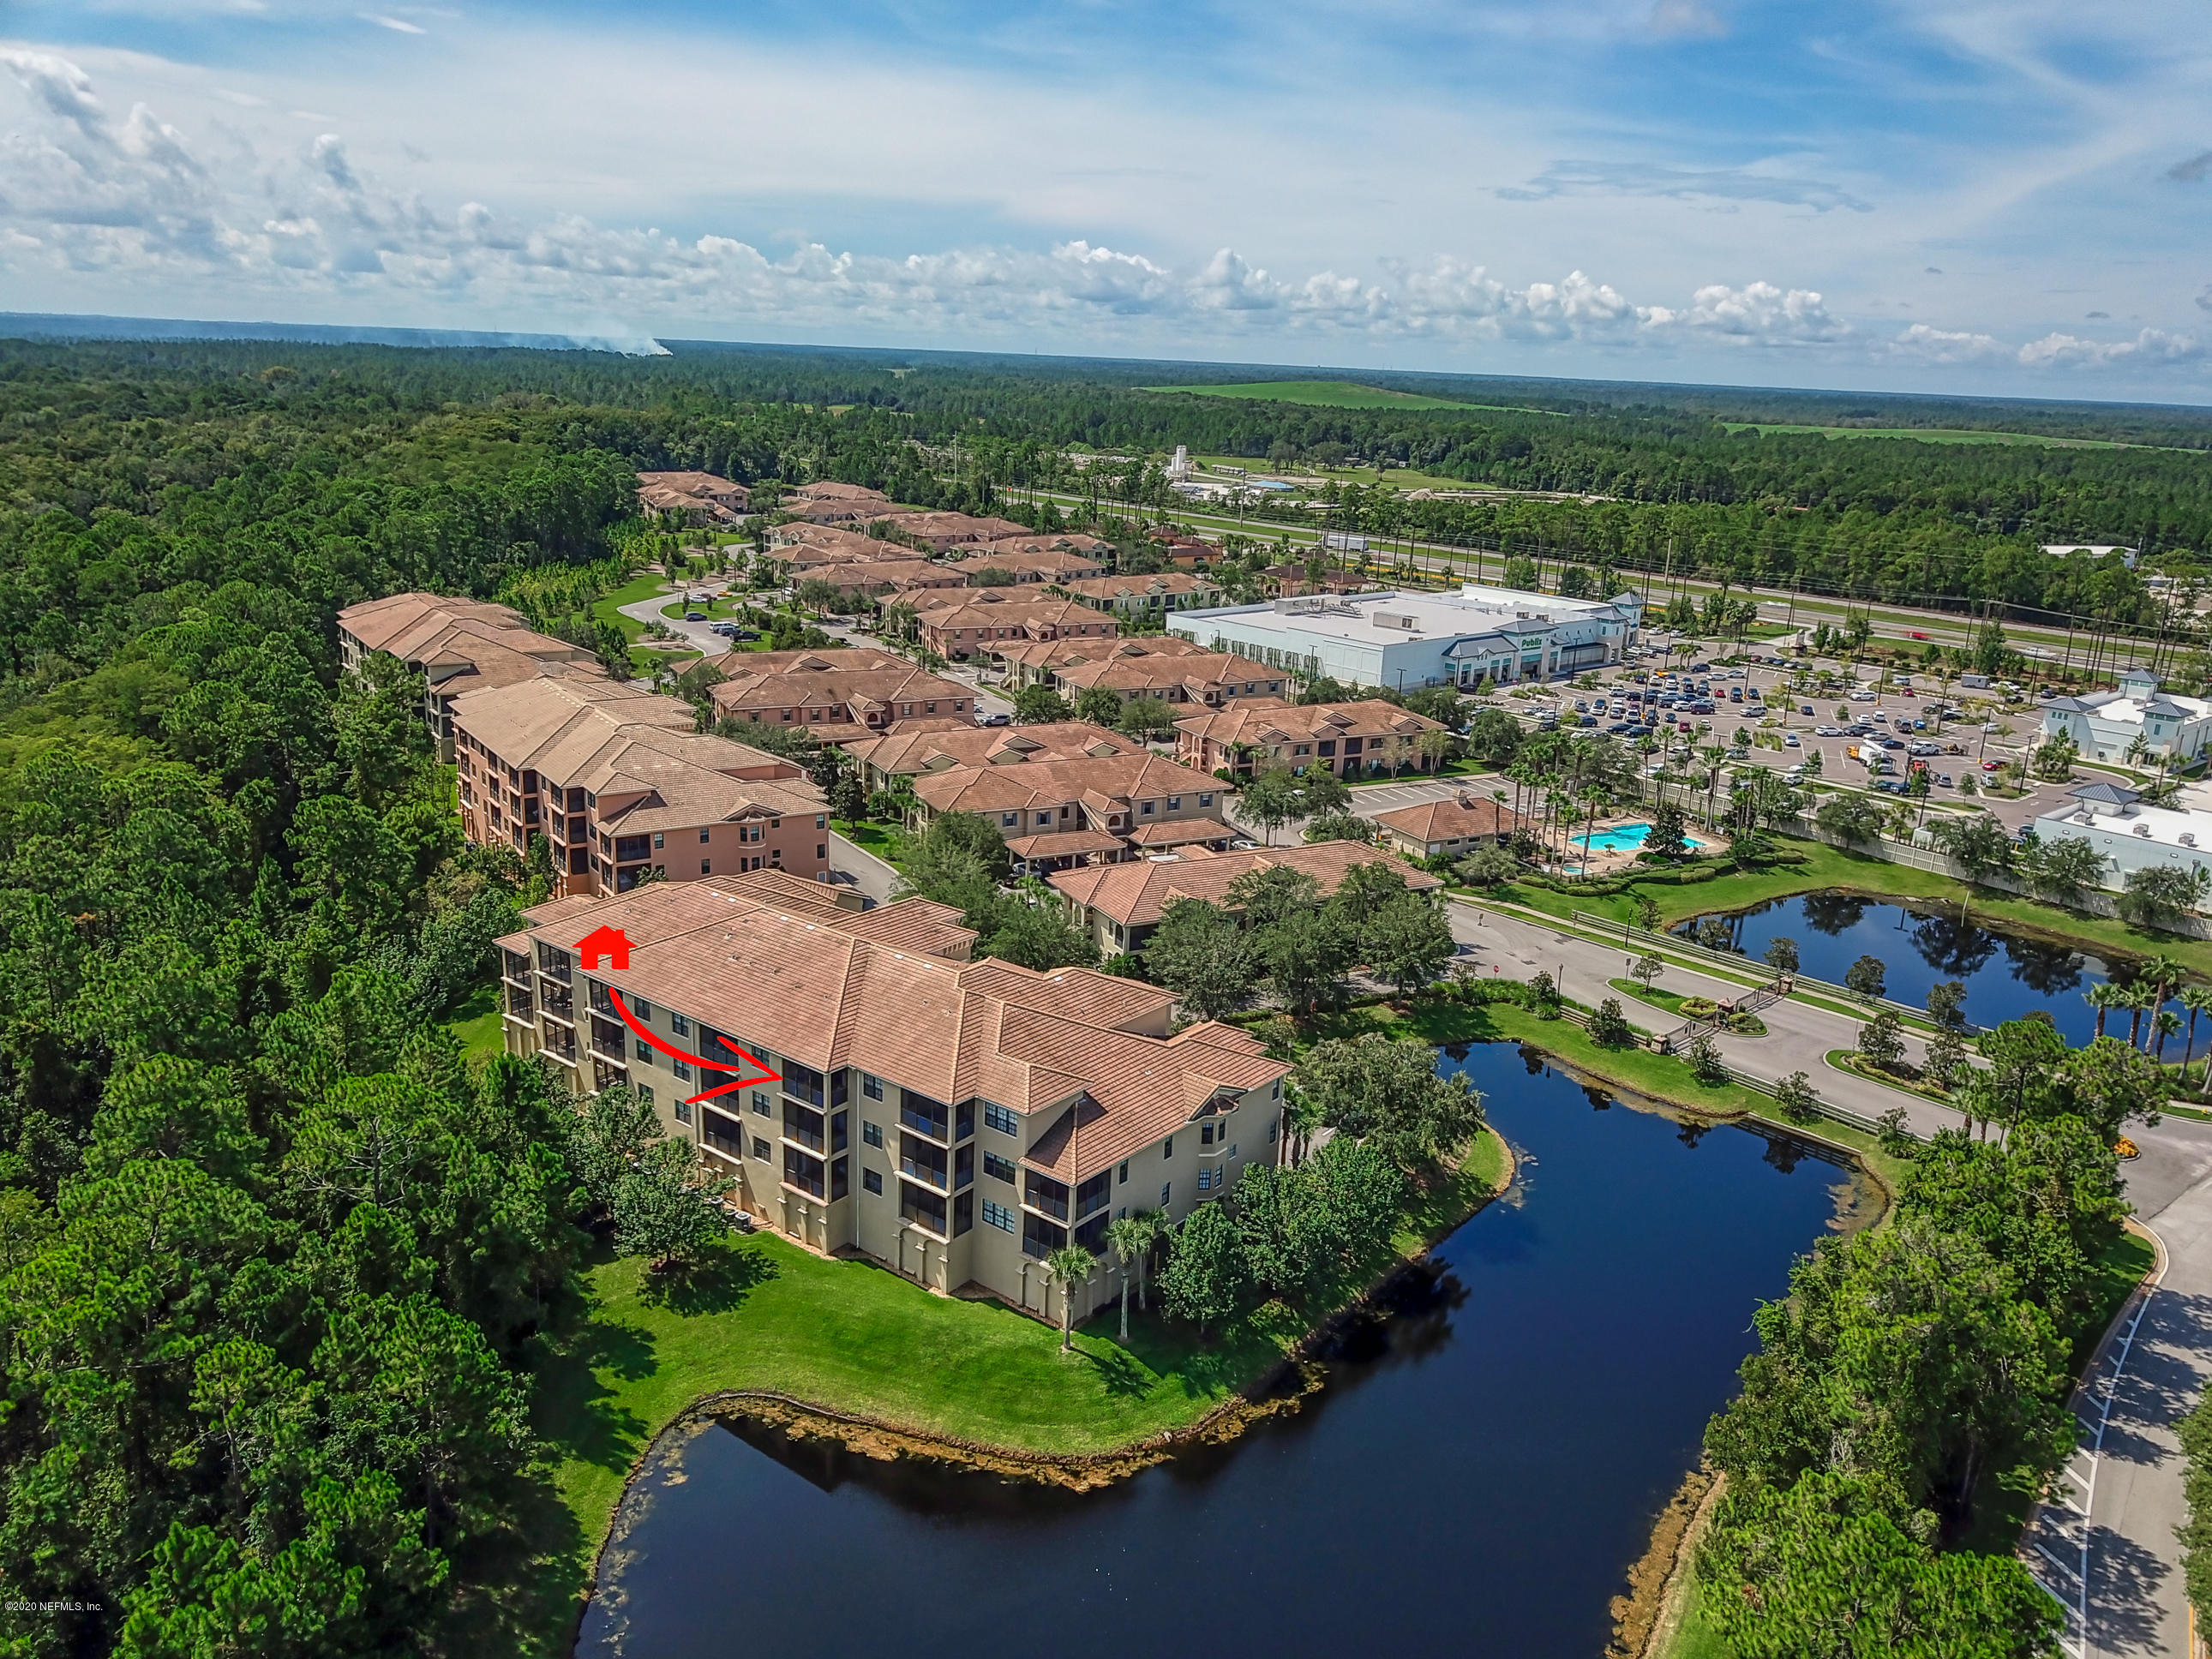 200 PASEO TERRAZA, ST AUGUSTINE, FLORIDA 32095, 2 Bedrooms Bedrooms, ,2 BathroomsBathrooms,Residential,For sale,PASEO TERRAZA,1069025